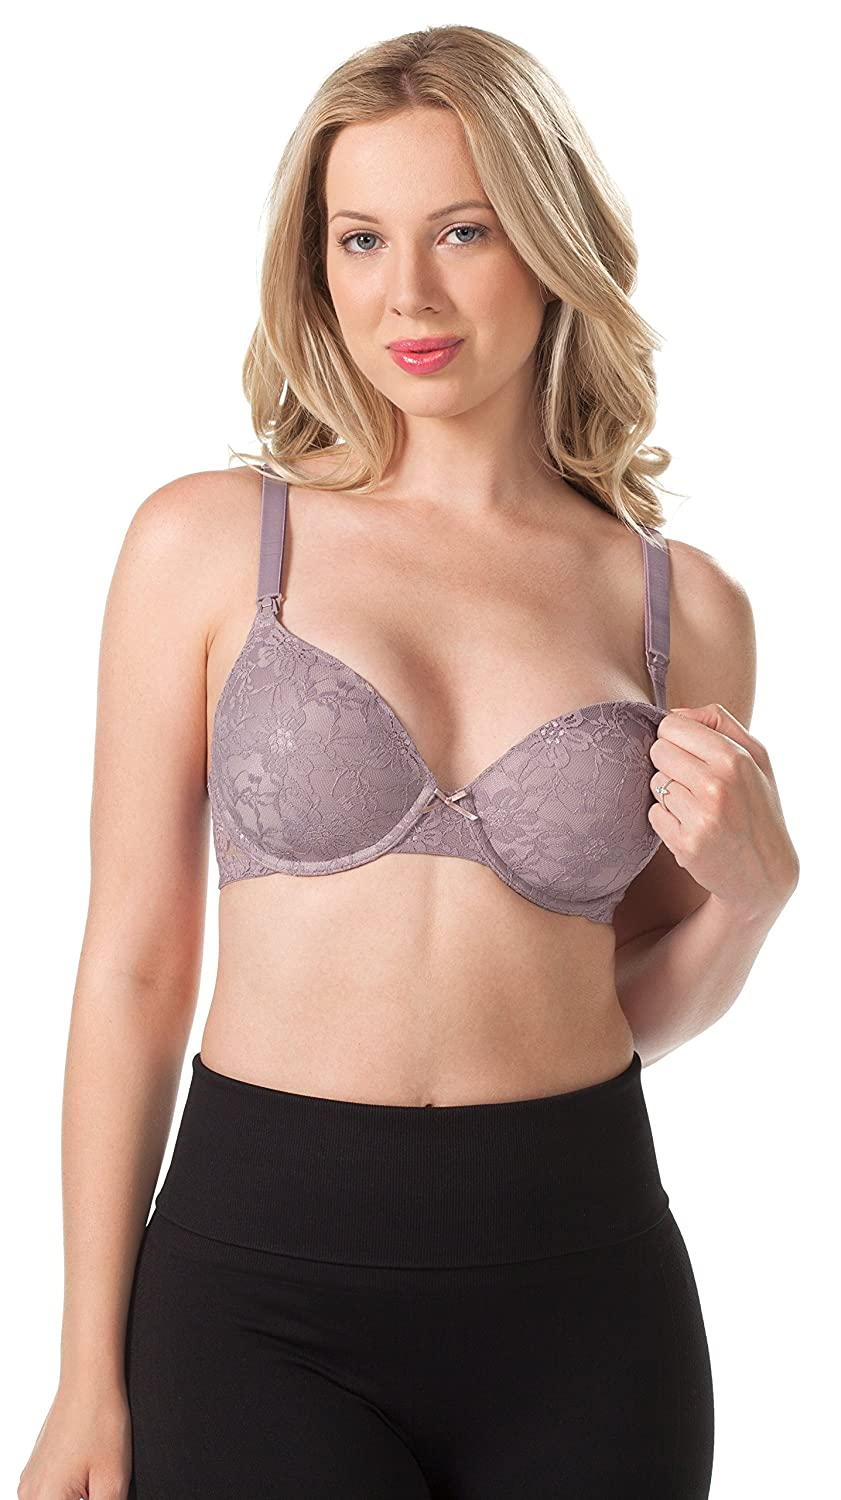 1e2d8d063 All-day comfort in a t-shirt bra. Sexy lace cups and blush bow. Easy  one-hand nursing clasp. Fold-down cups for simple breastfeeding